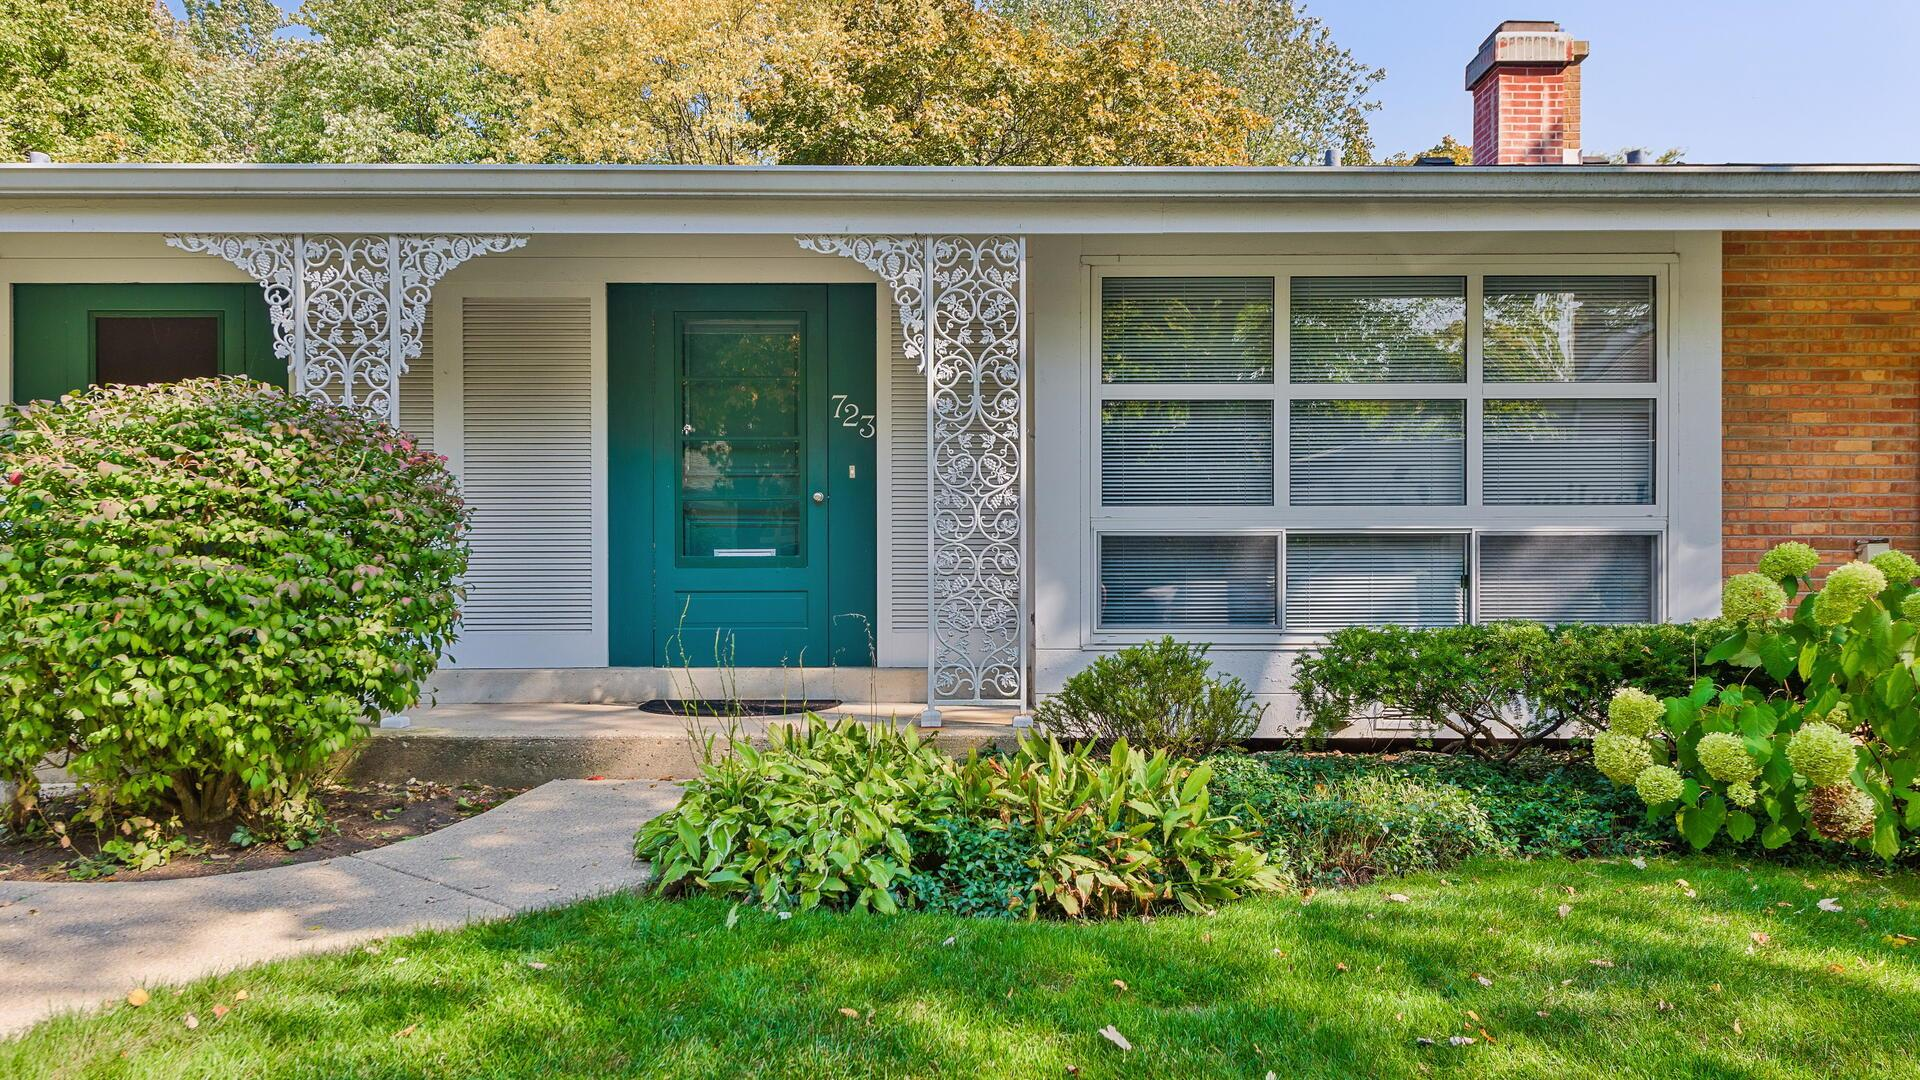 723 CARRIAGE HILL Drive, Glenview, IL 60025 - #: 10903965